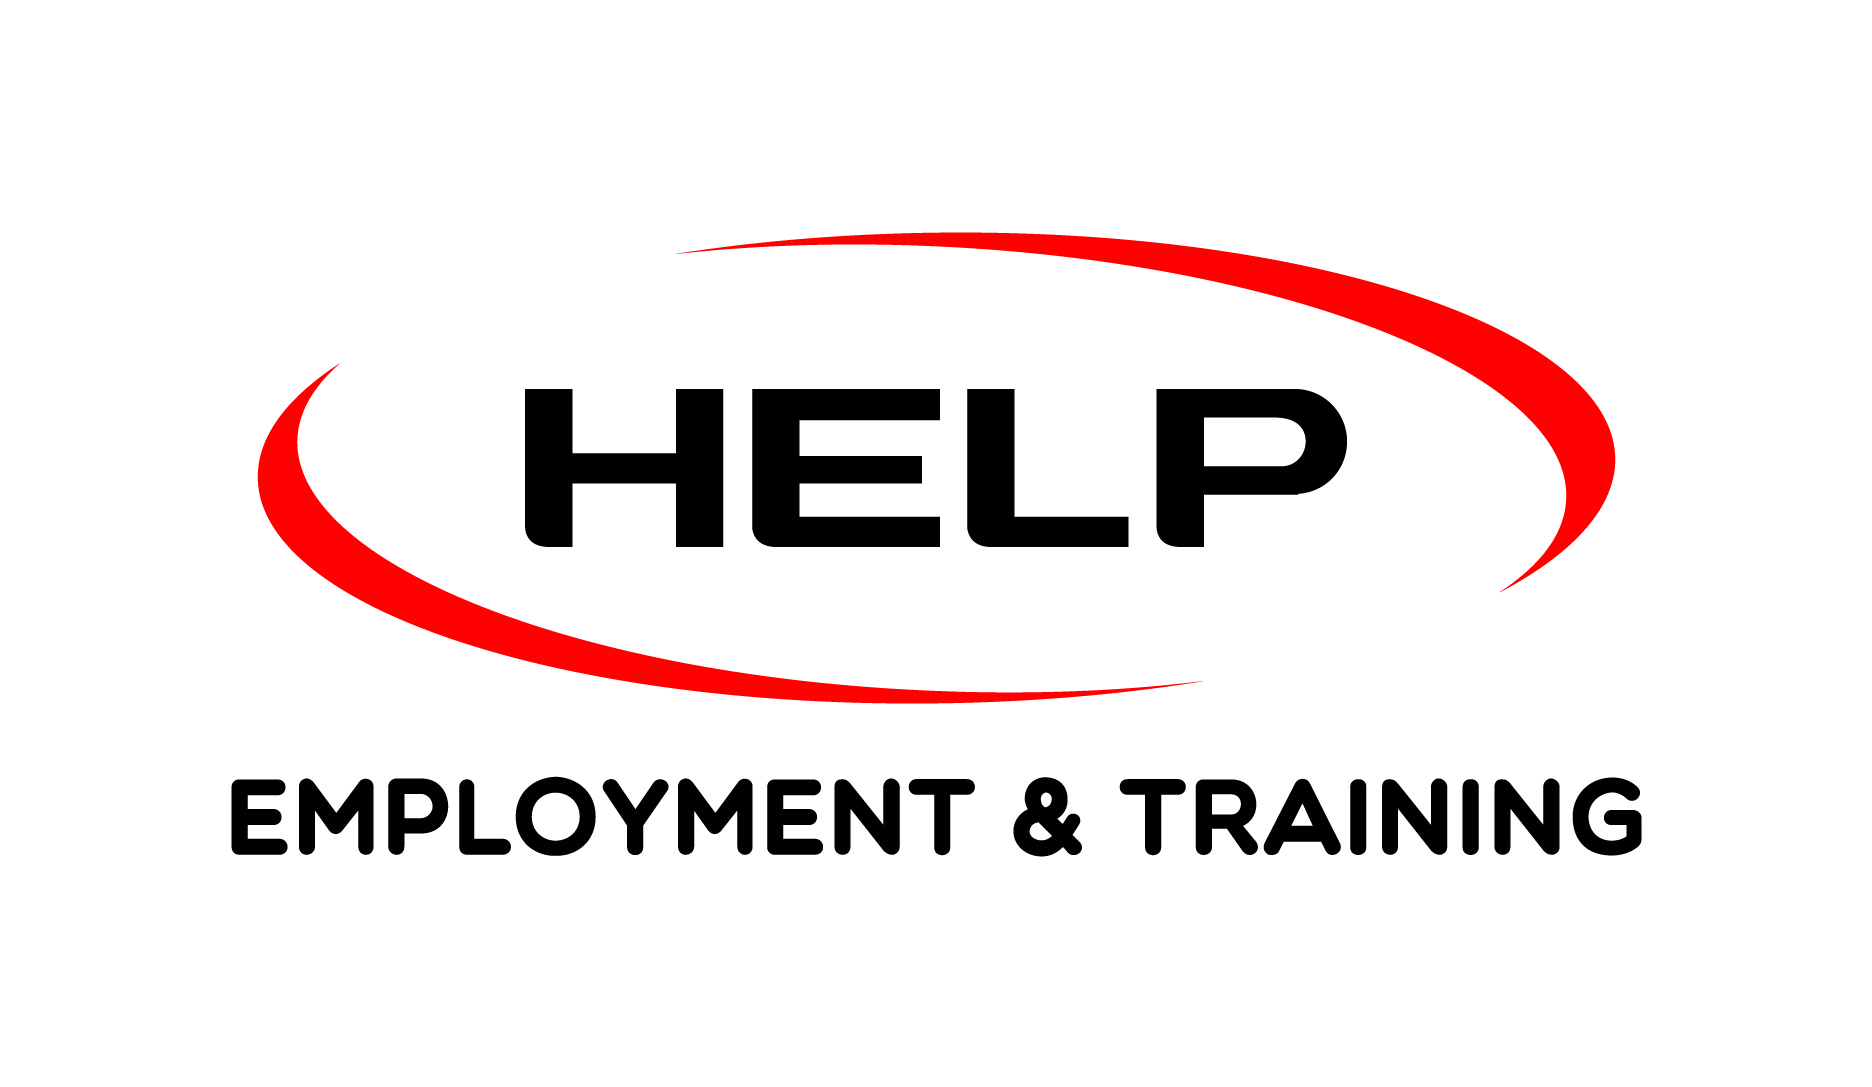 Help Employment & Training - Bellara